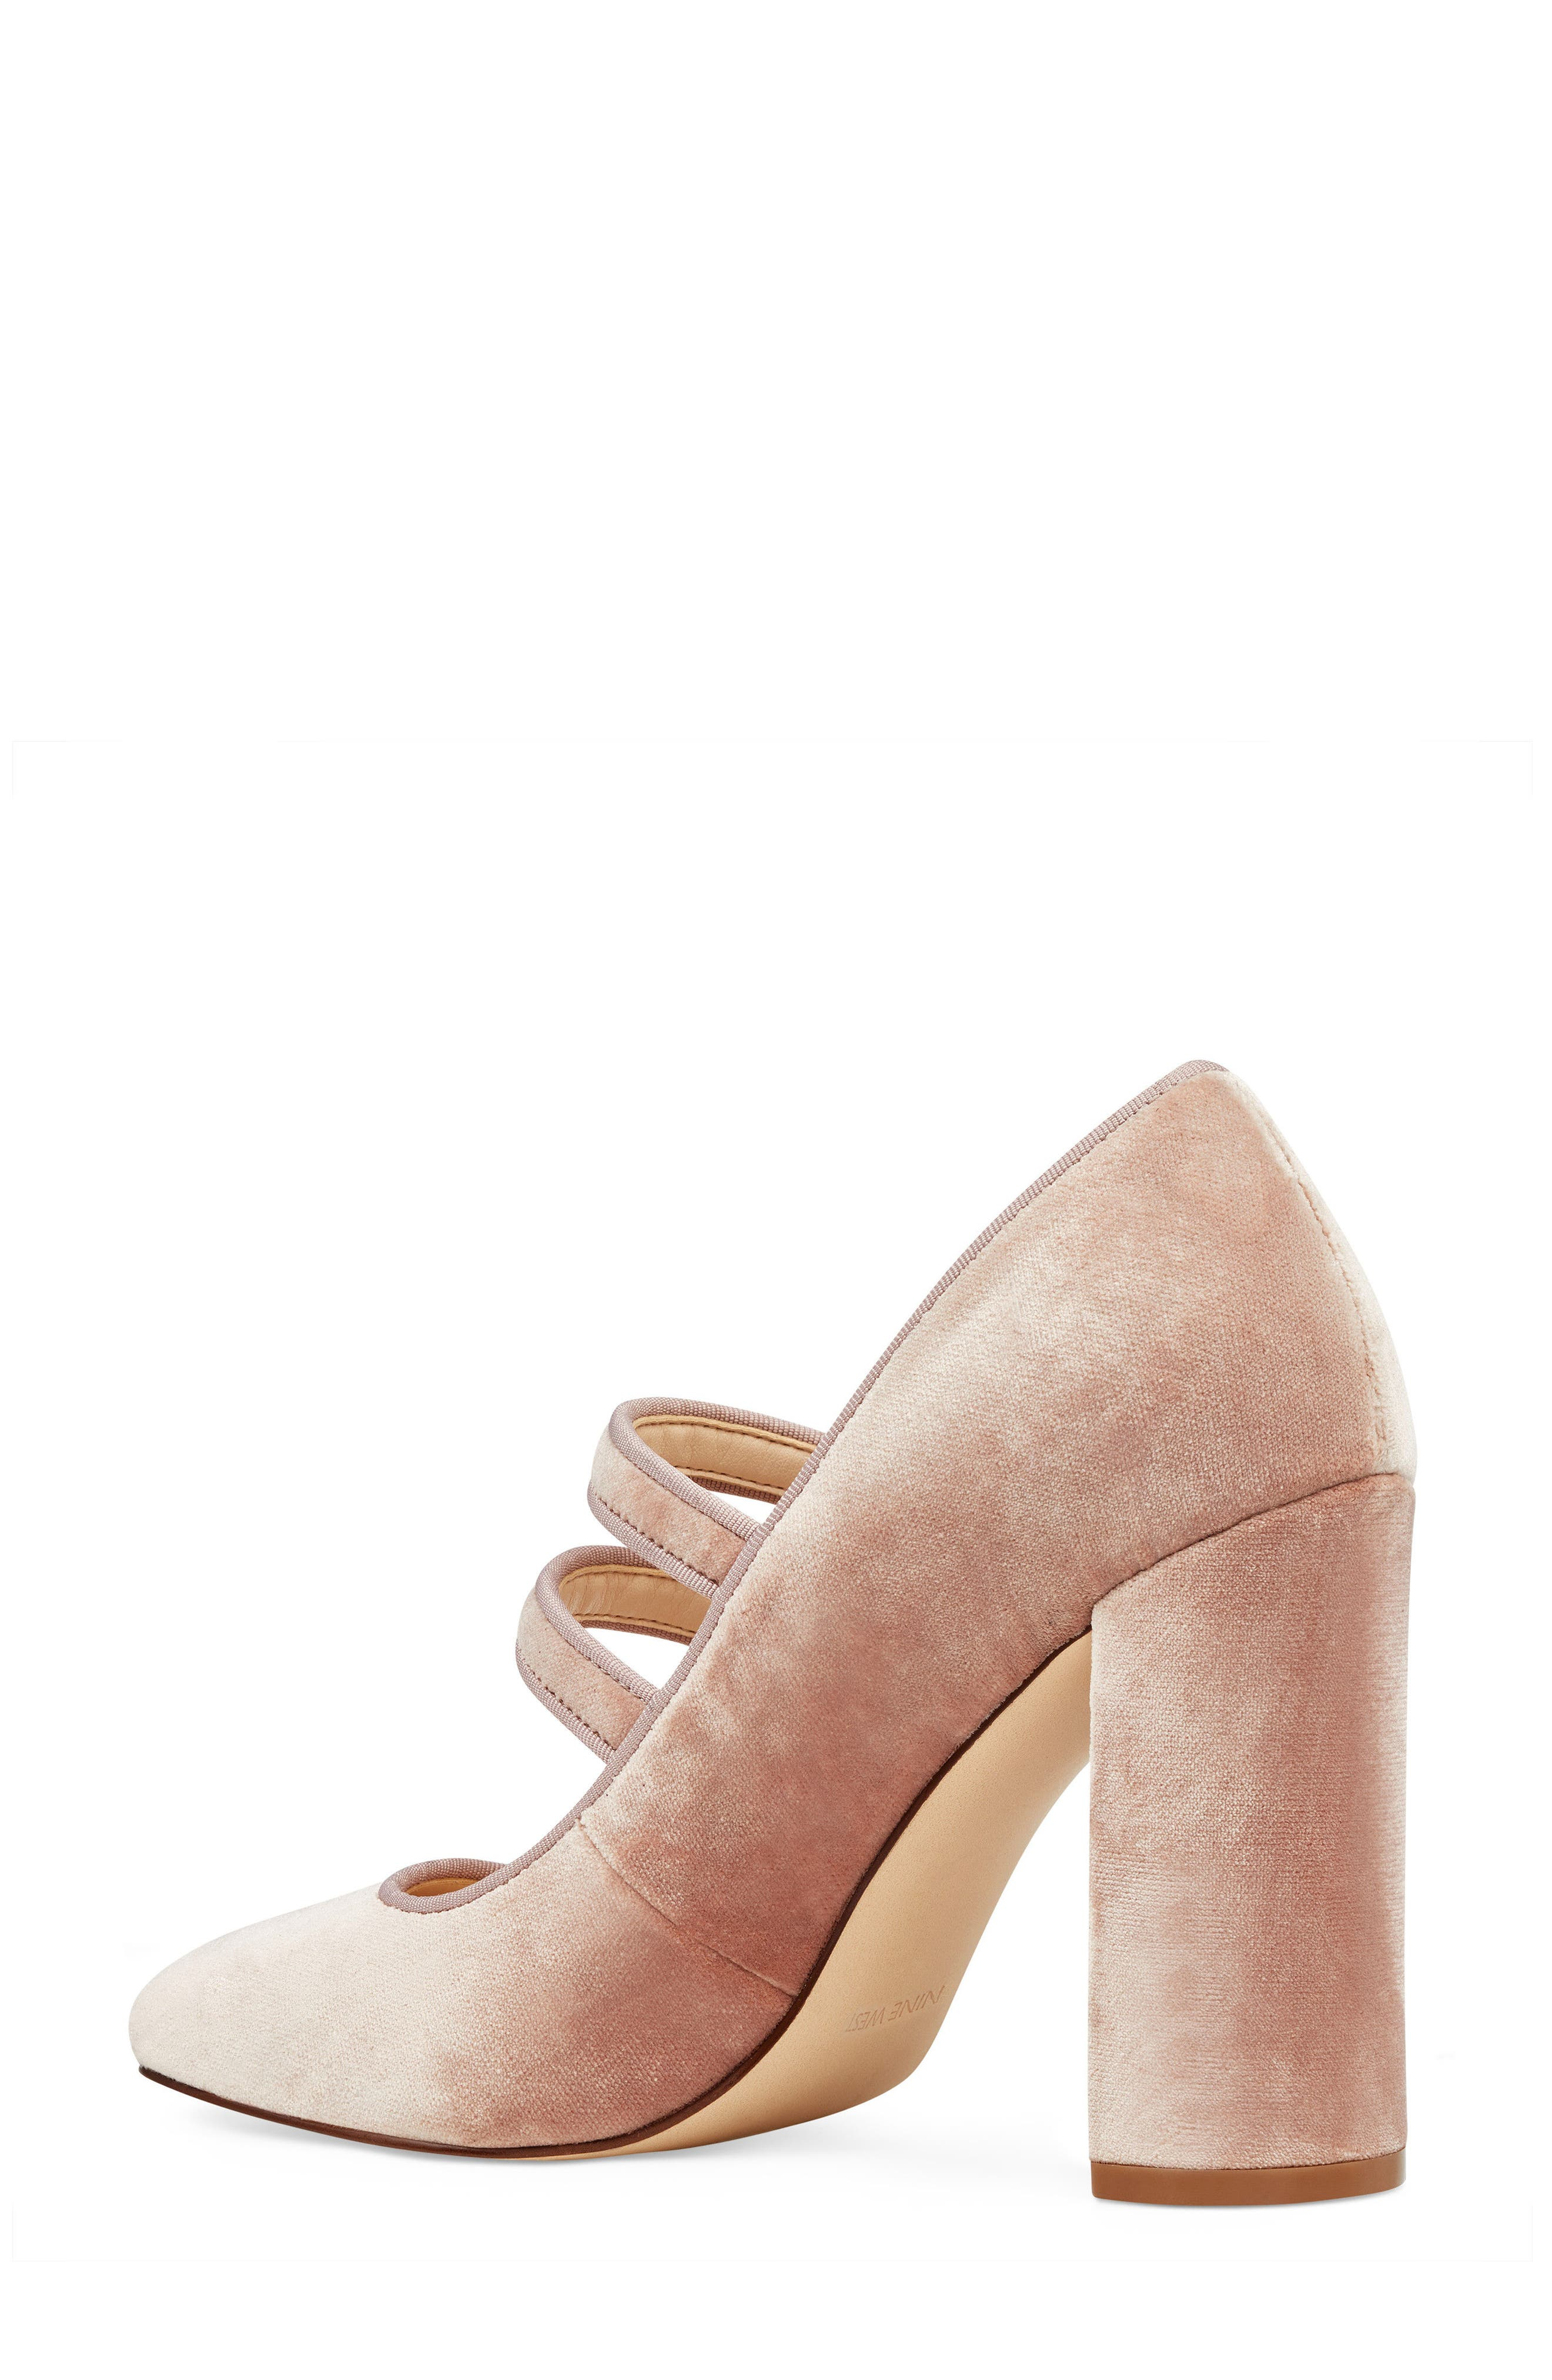 Dabney Double Strap Mary Jane Pump,                             Alternate thumbnail 7, color,